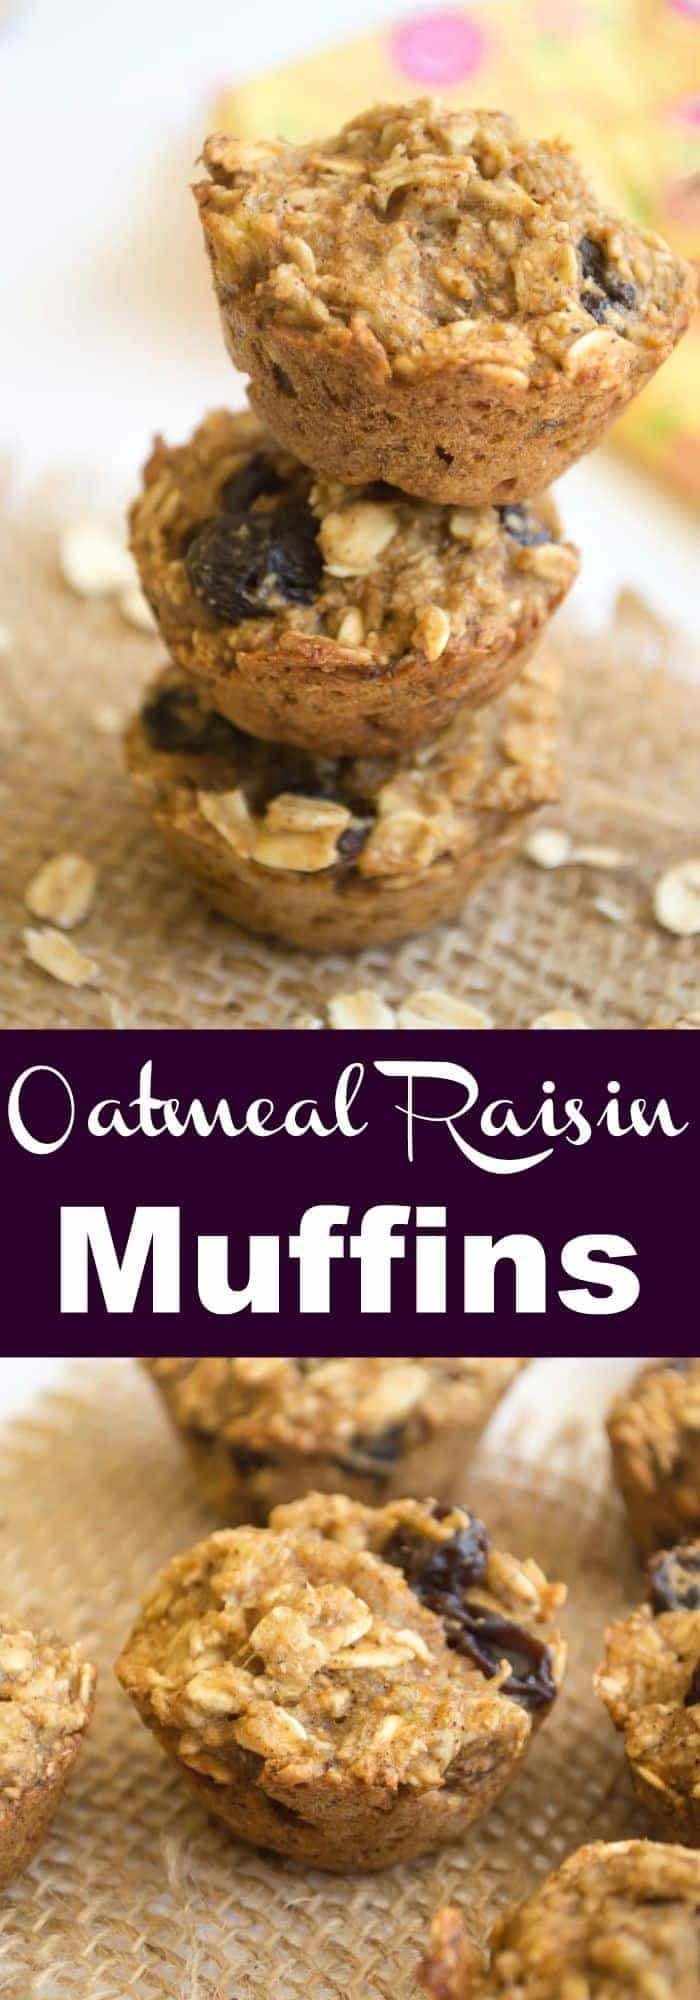 oatmeal raisin cookies muffin tops oatmeal raisin cookie muffins ...